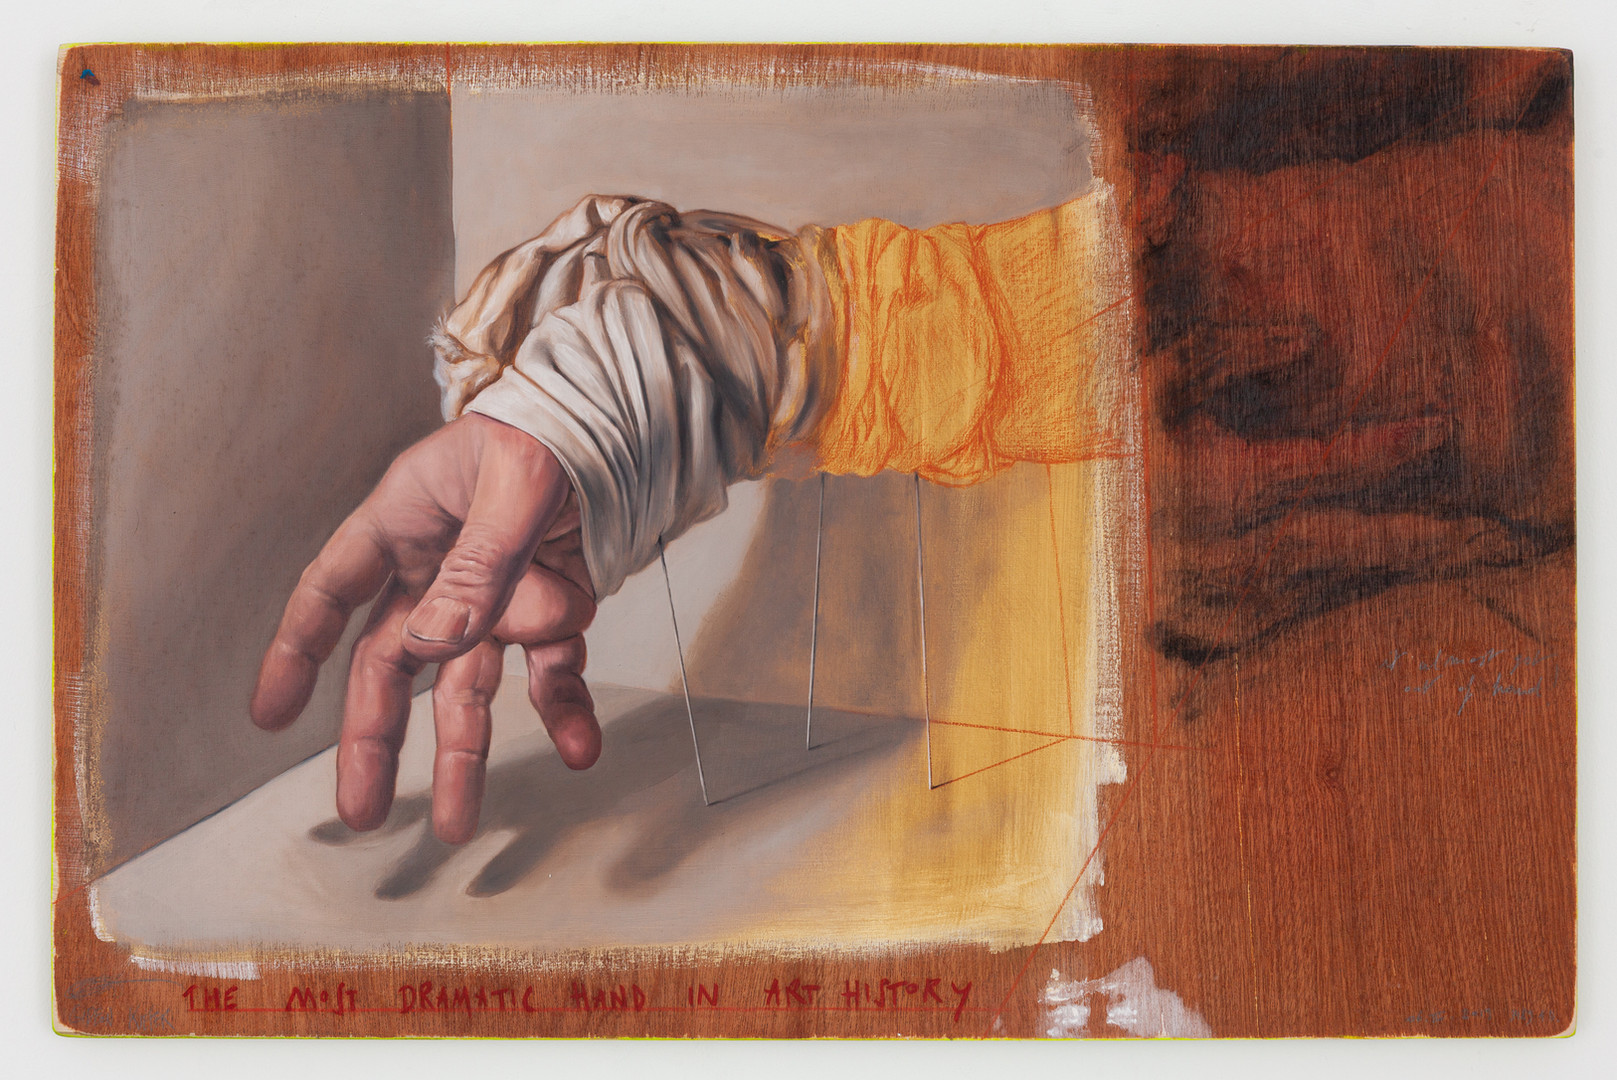 The Most Dramatic Hand in Art History